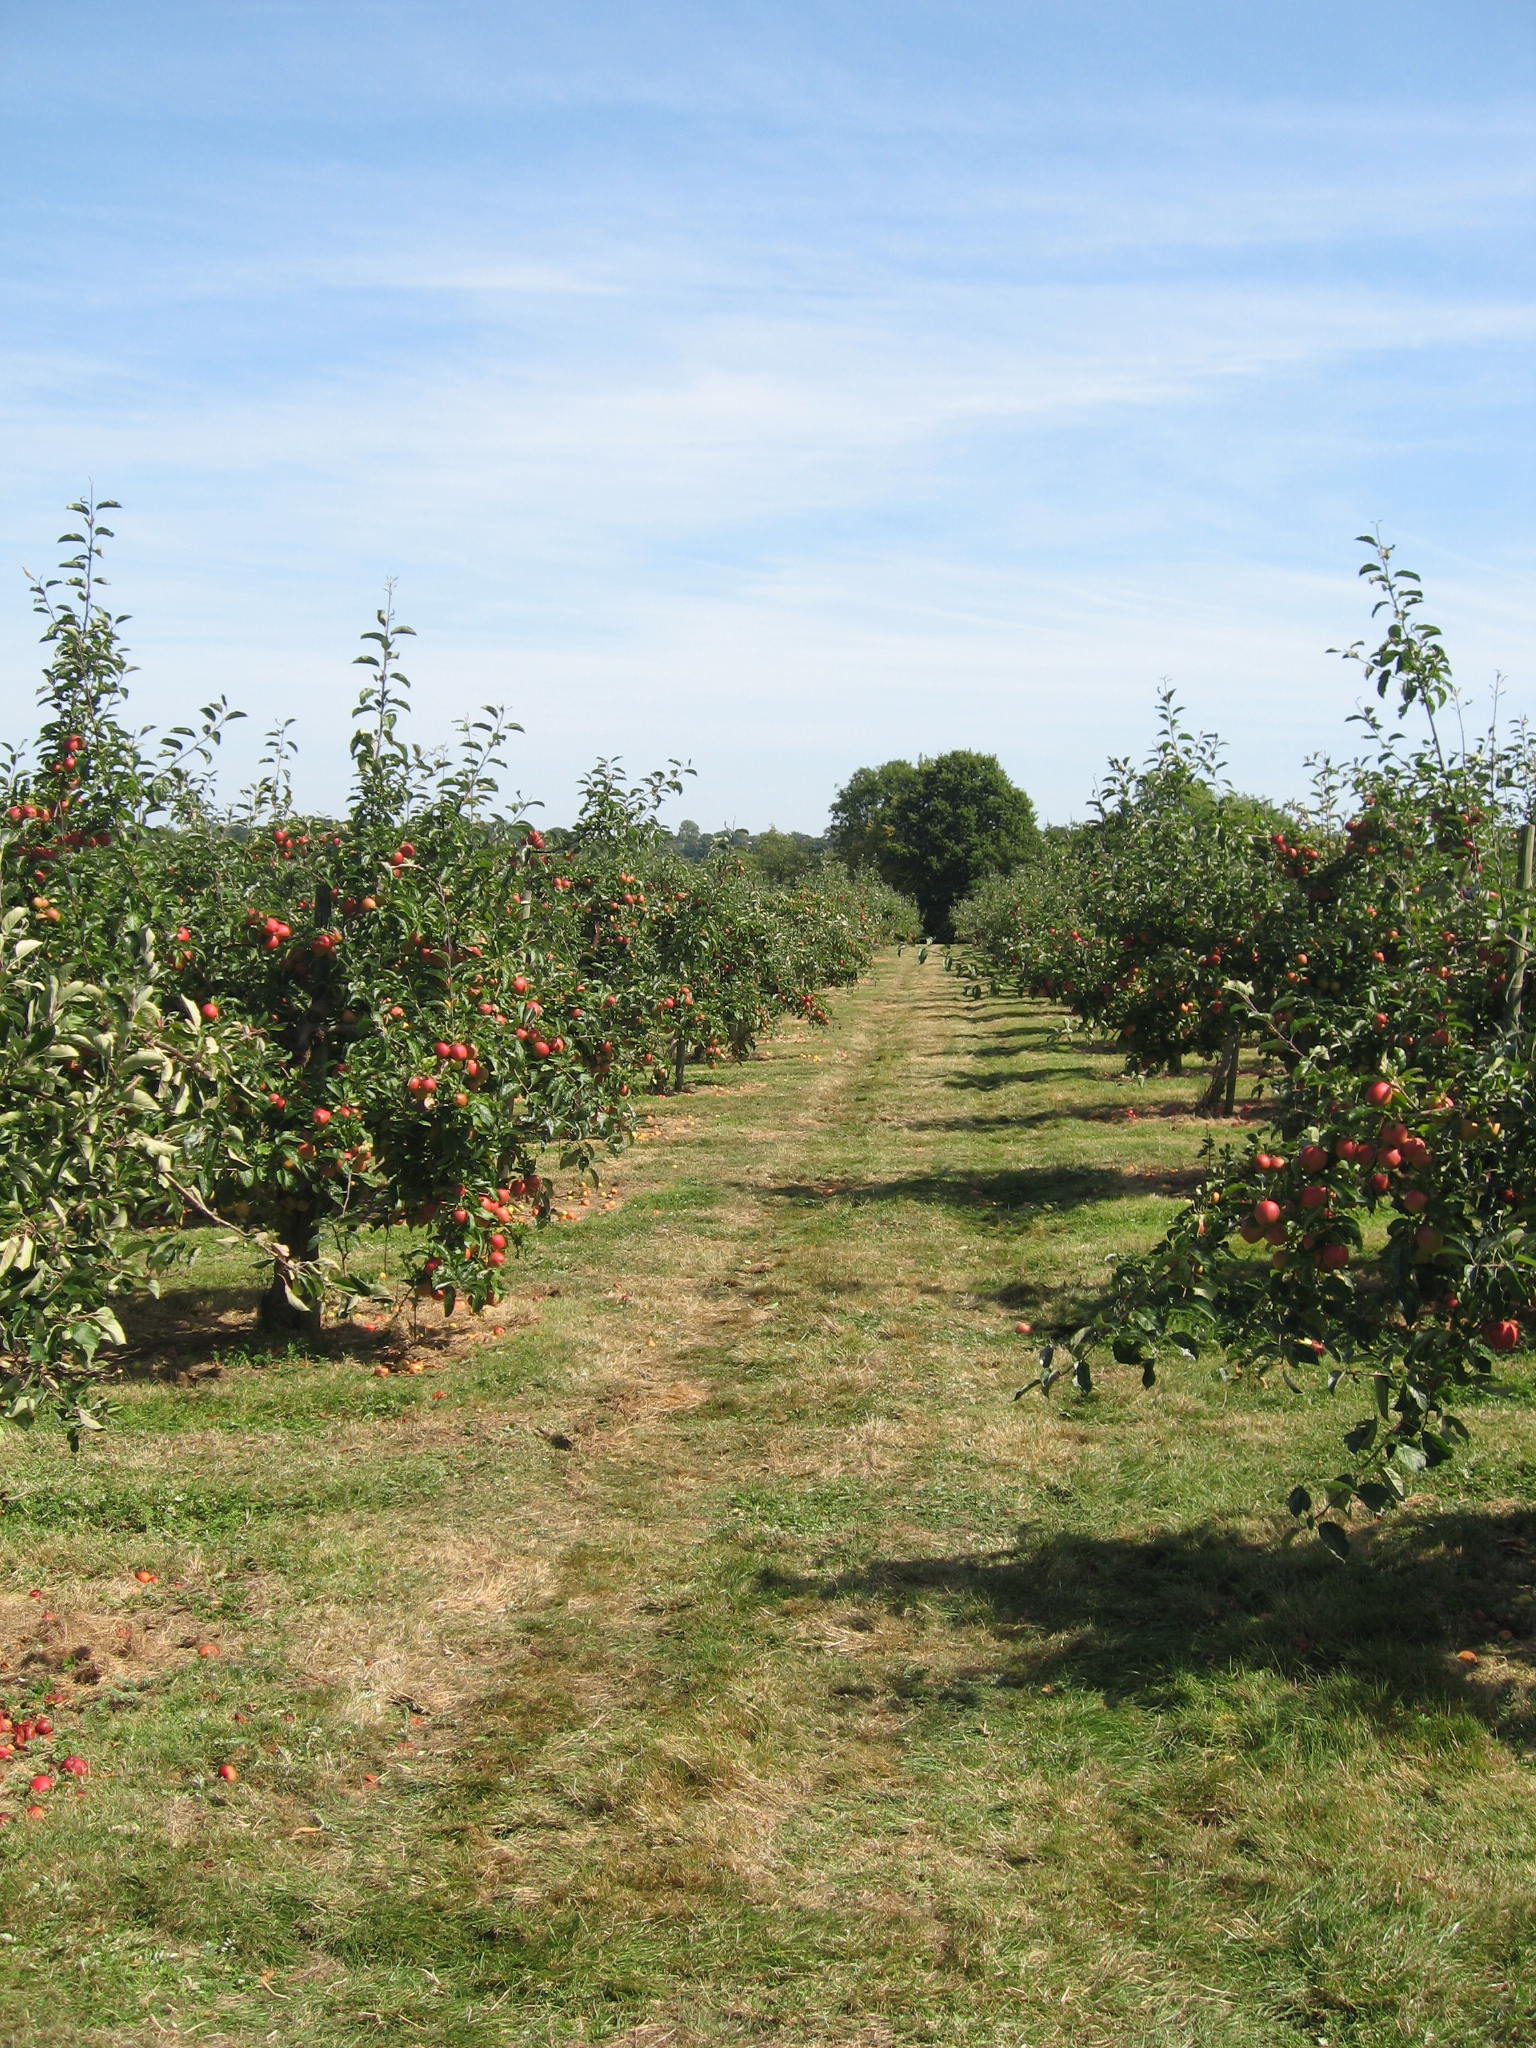 Avenue of Apple Trees in an Orchard